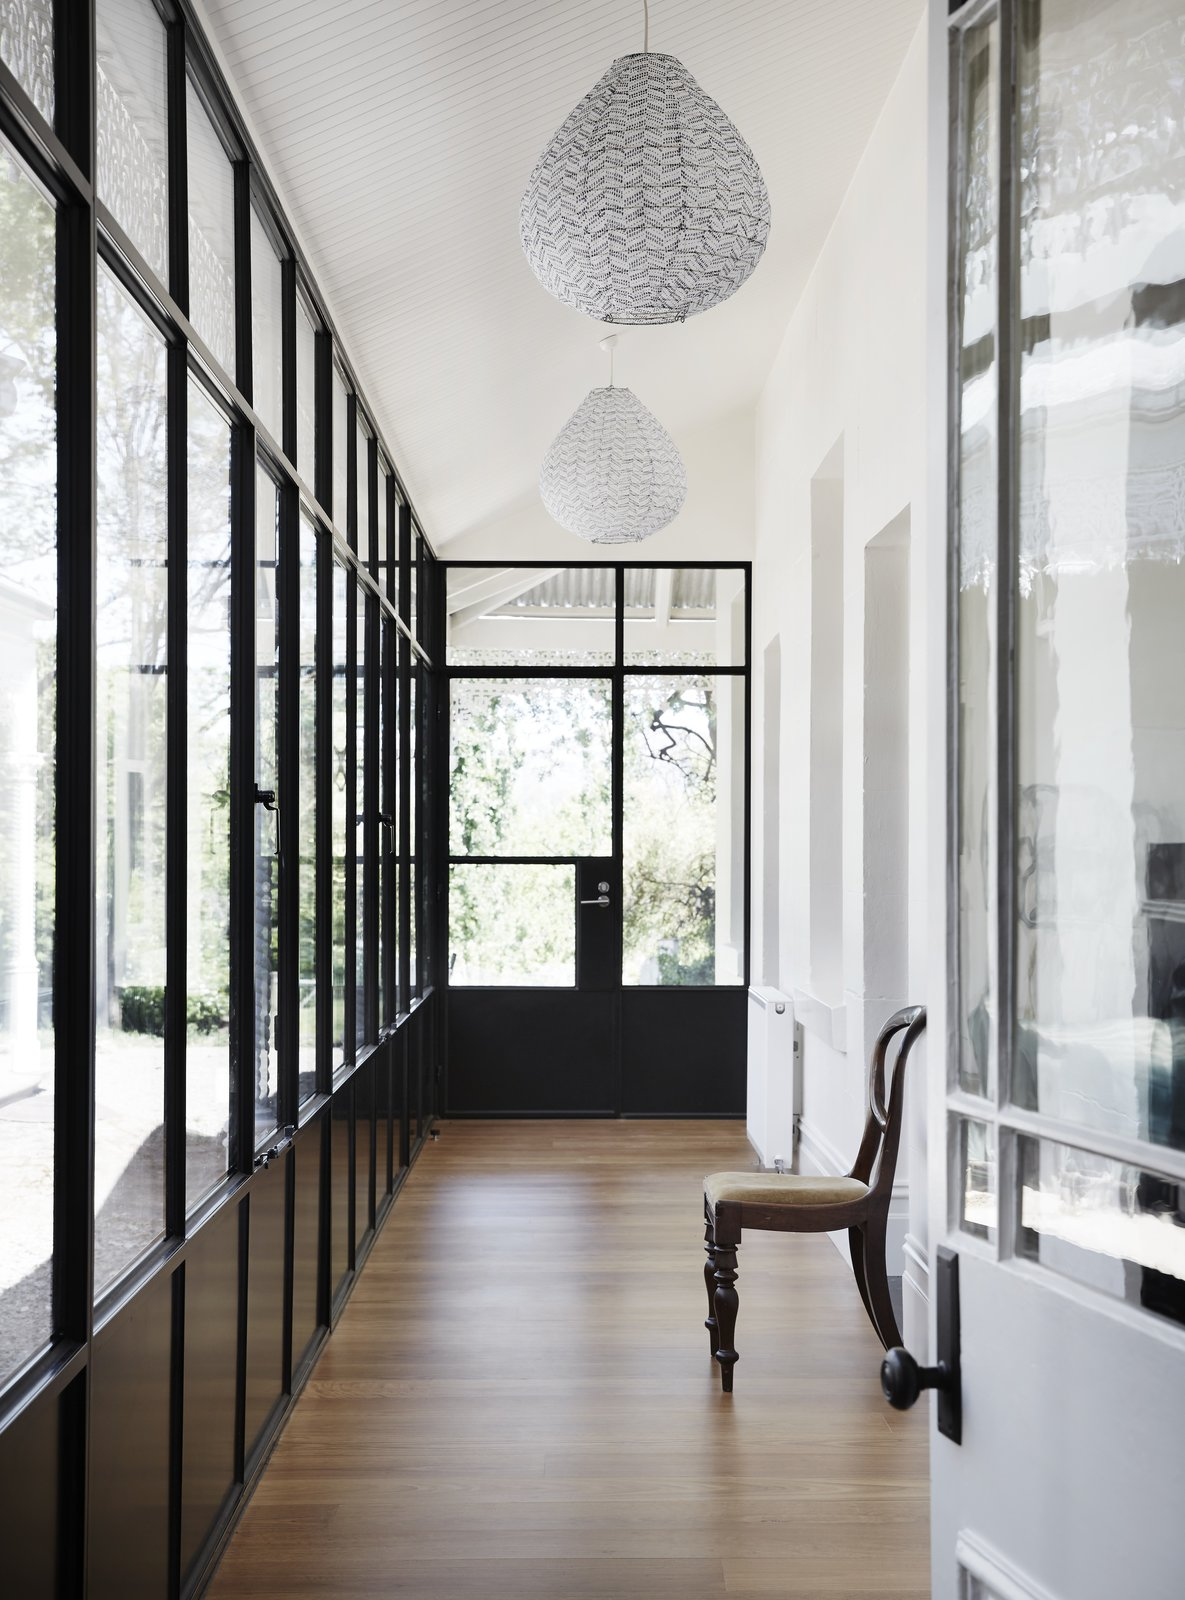 Hallway and Medium Hardwood By enclosing a veranda with steel-framed glass, the Templeton Architects created a light-flooded hallway.  Best Hallway Medium Hardwood Photos from Light Floods This Dazzling Renovated Victorian in Australia